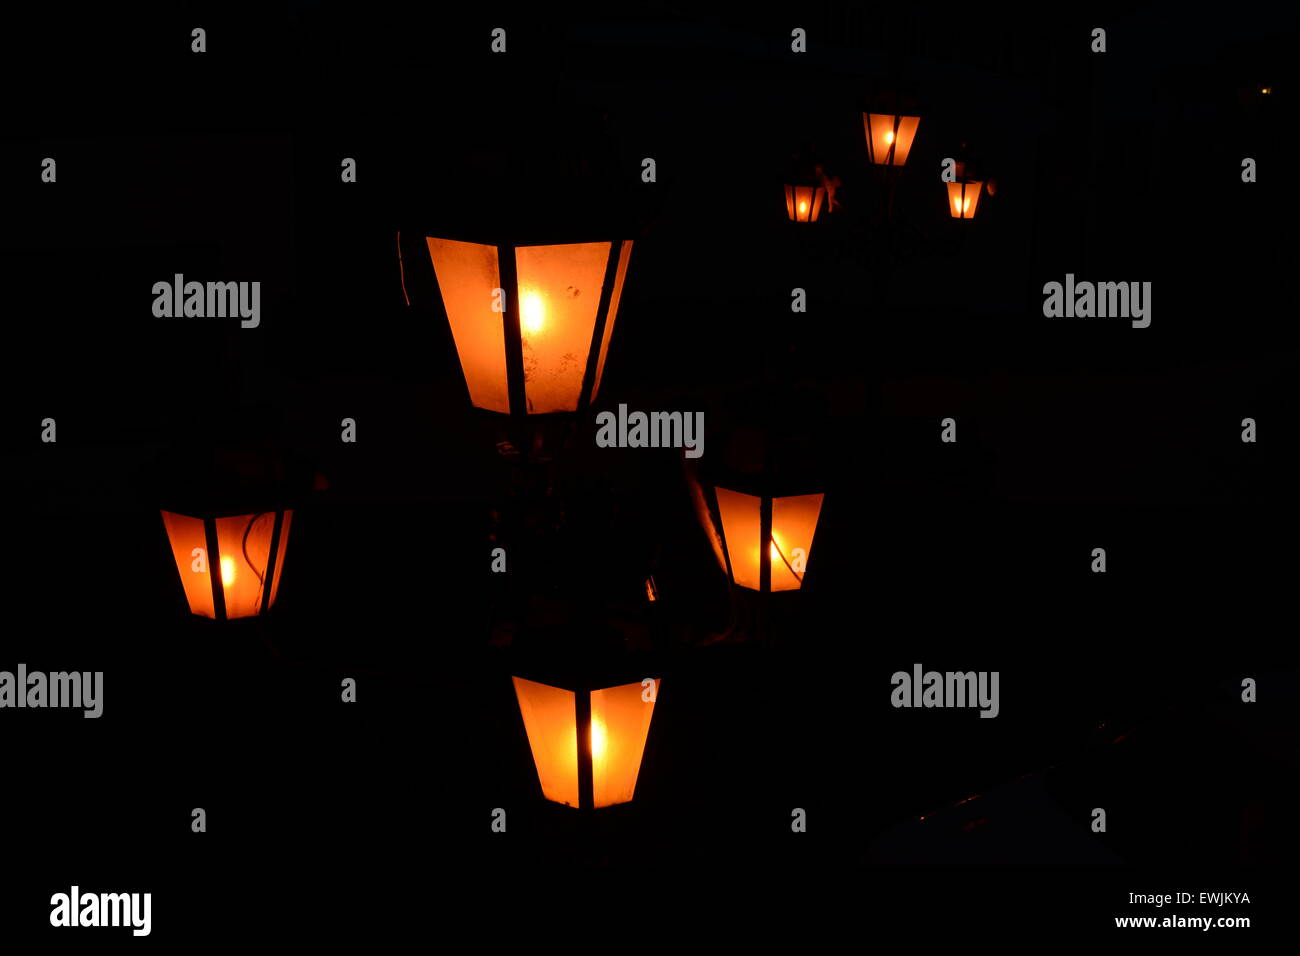 Mystical lamps shining in the dark. - Stock Image